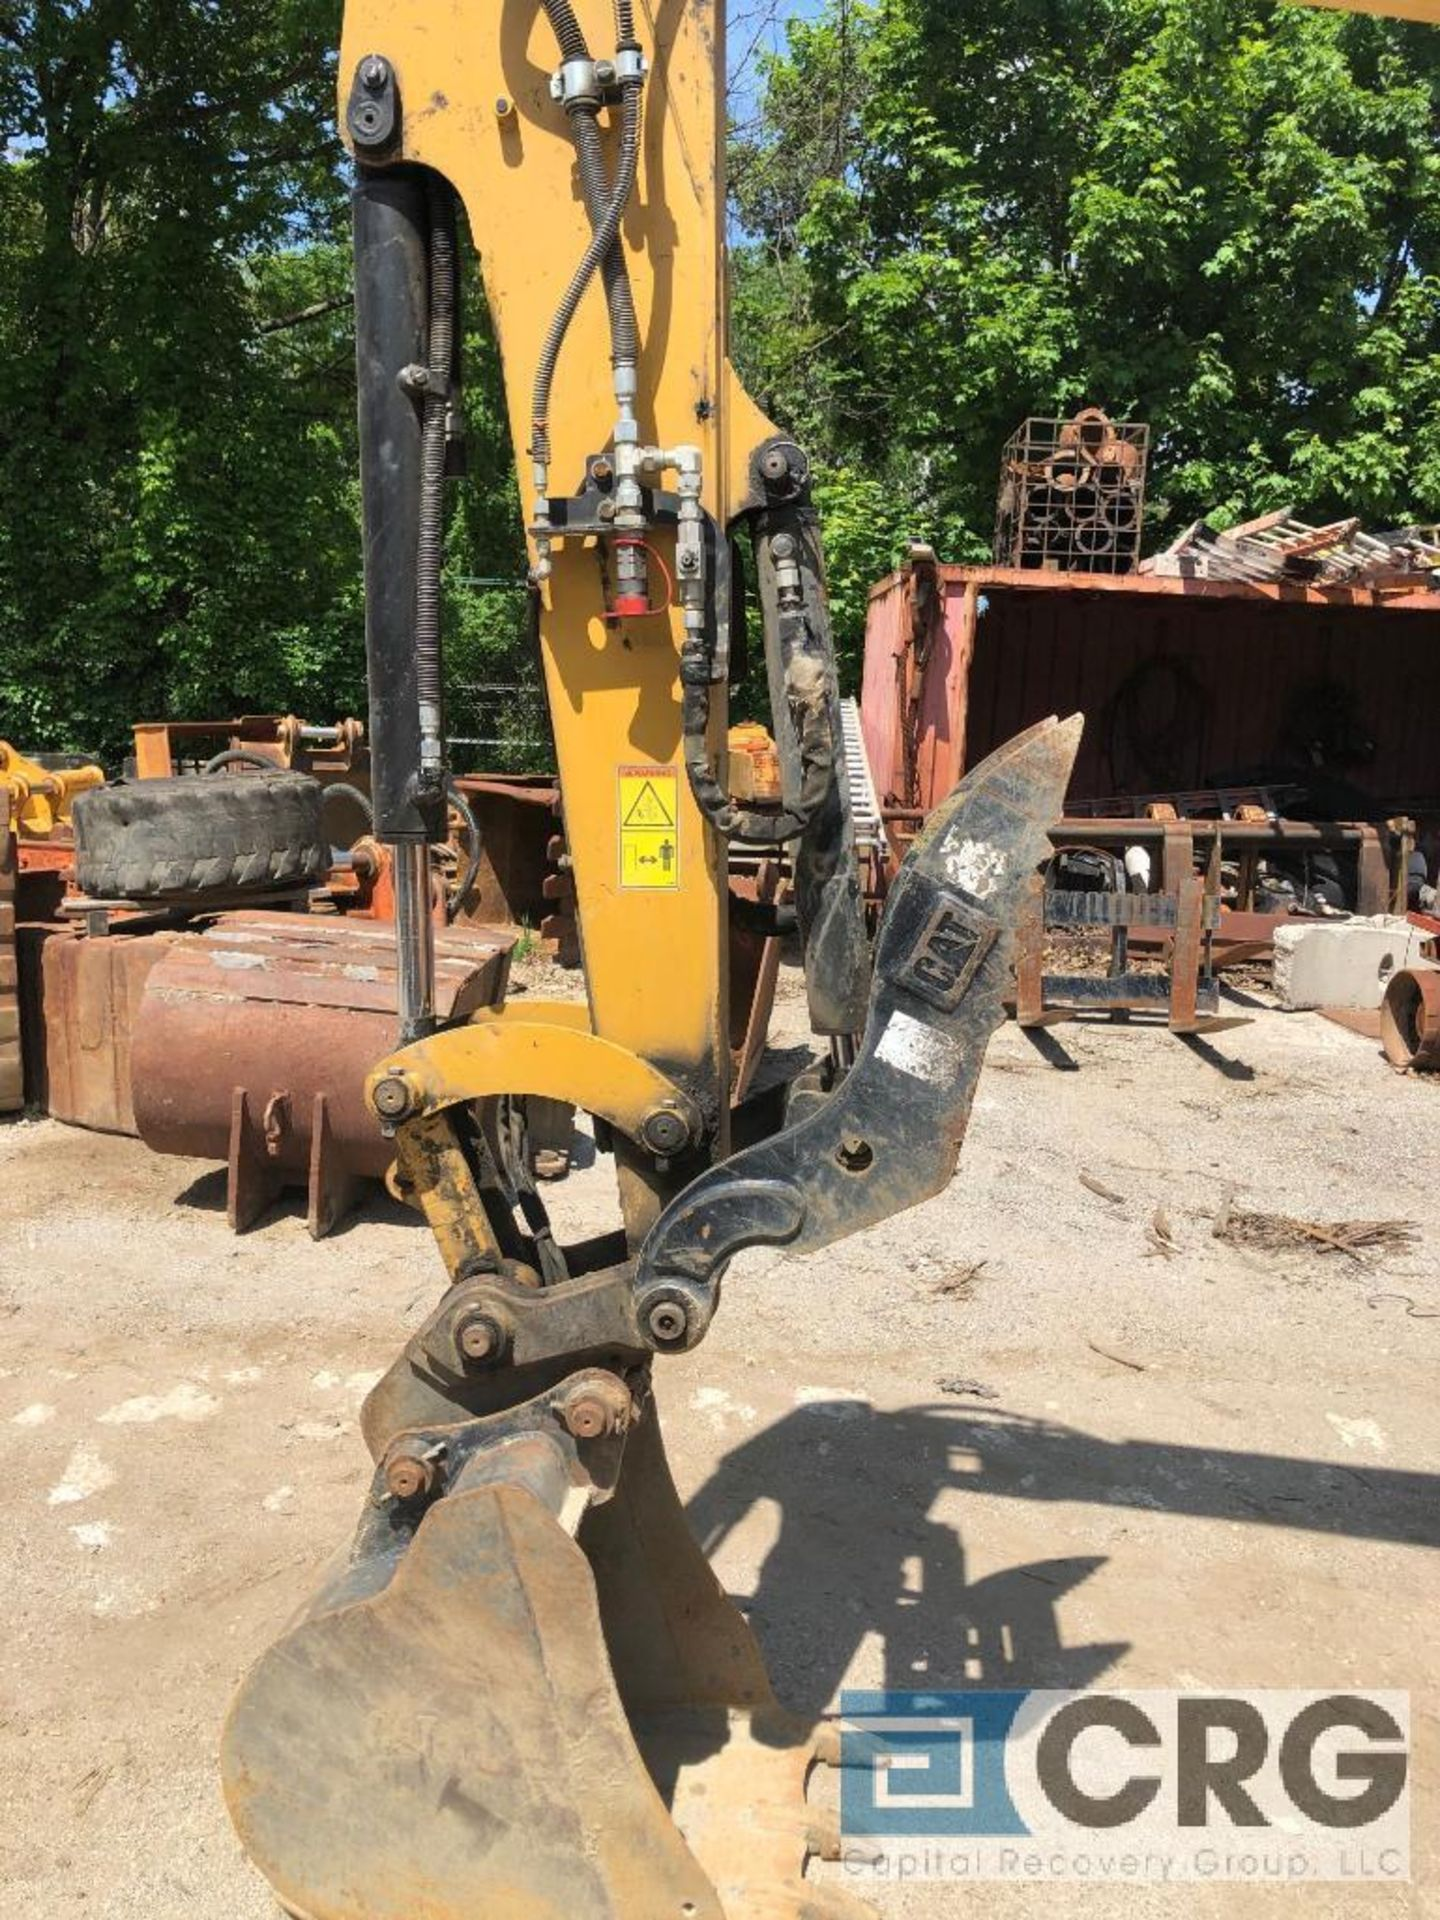 Lot 305 - 2017 CAT 305.5E2 Mini Excavator Hydraulic Thumb, Quick Coupler, Auxilary Hydraulic Lines, Heat and